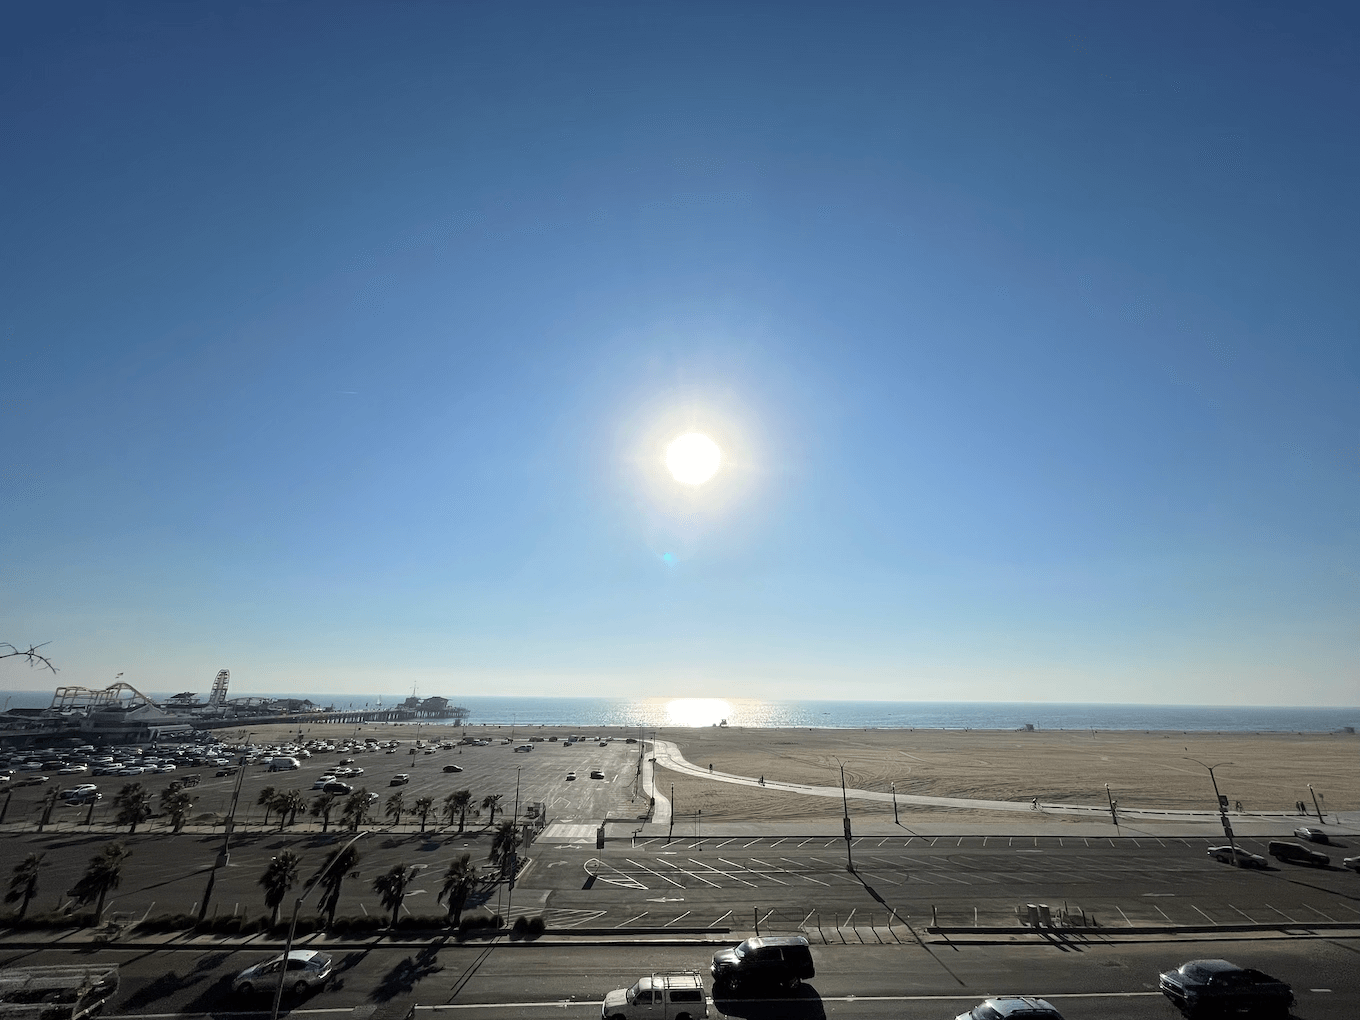 Ultra Wide shot of sun over the ocean with a lens flare.